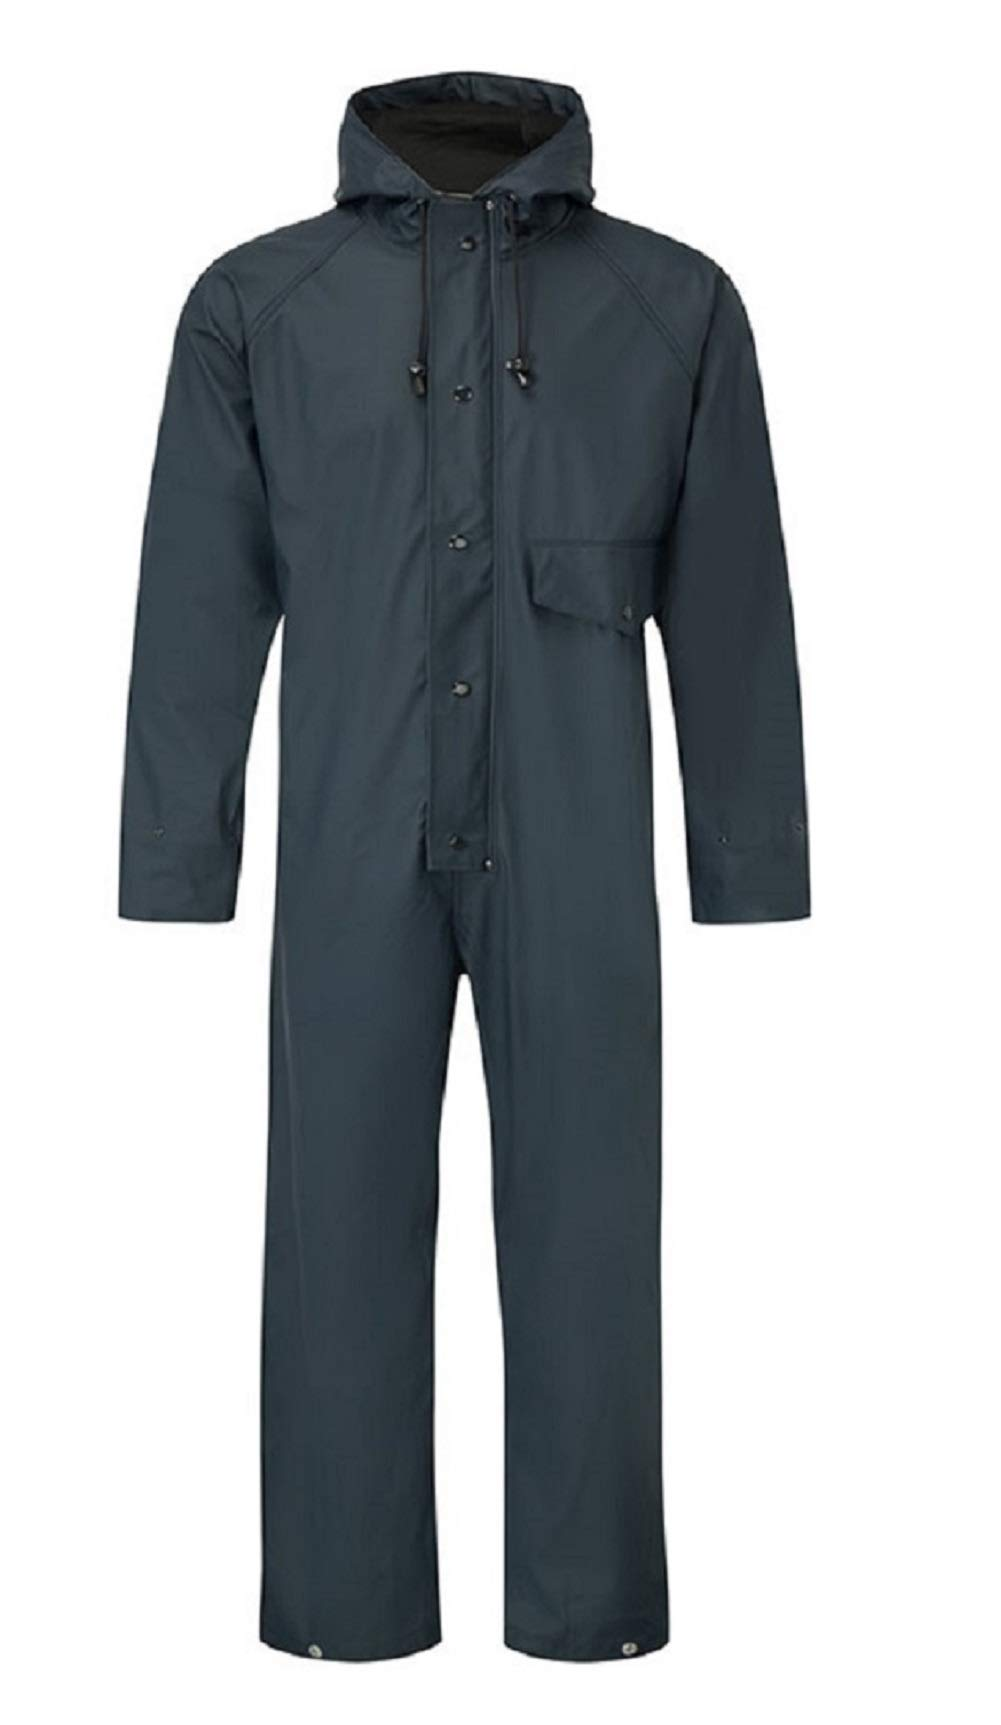 Blue Castle Flex PU Tricot Fabric Stretchable Coveralls Waterproof Overalls Work Fish Boat Sail Yellow, XXL Chest To Fit 52-54